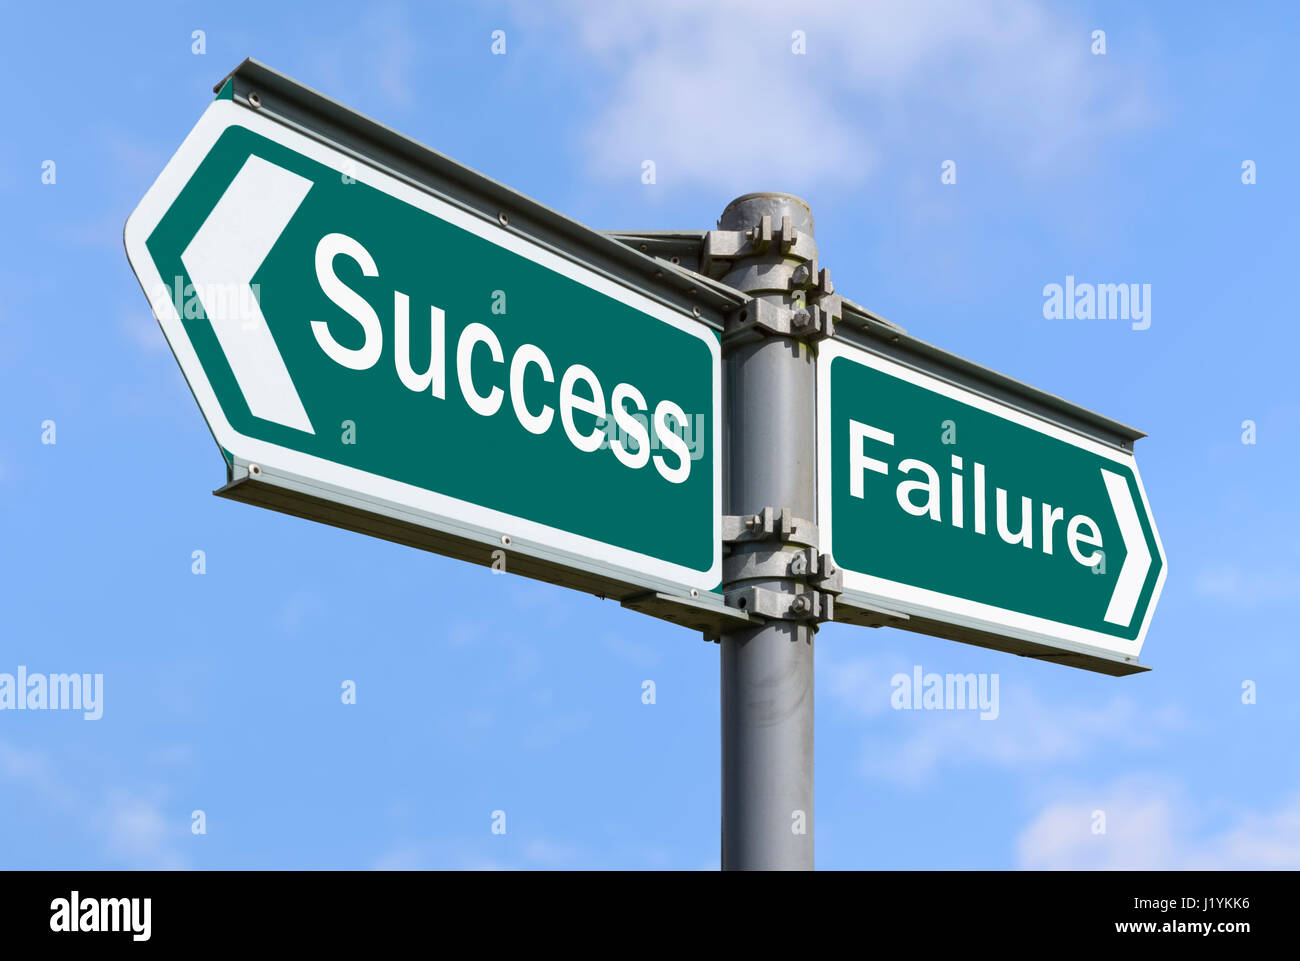 Success and Failure concept sign pointing in opposite directions. - Stock Image